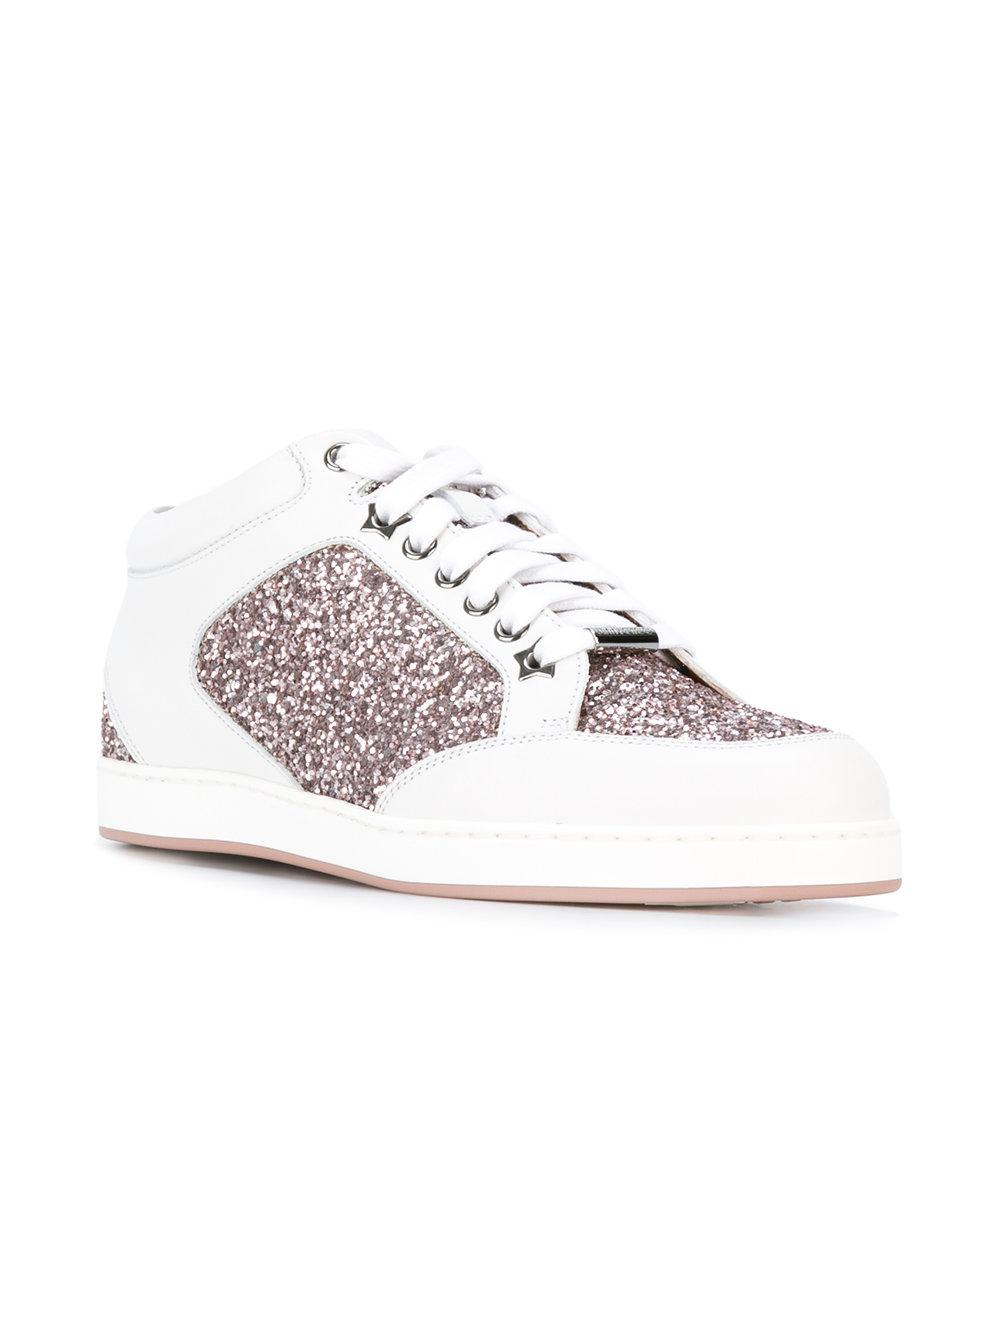 Jimmy Choo Leather Mid-top Miami Glitter Sneakers in White